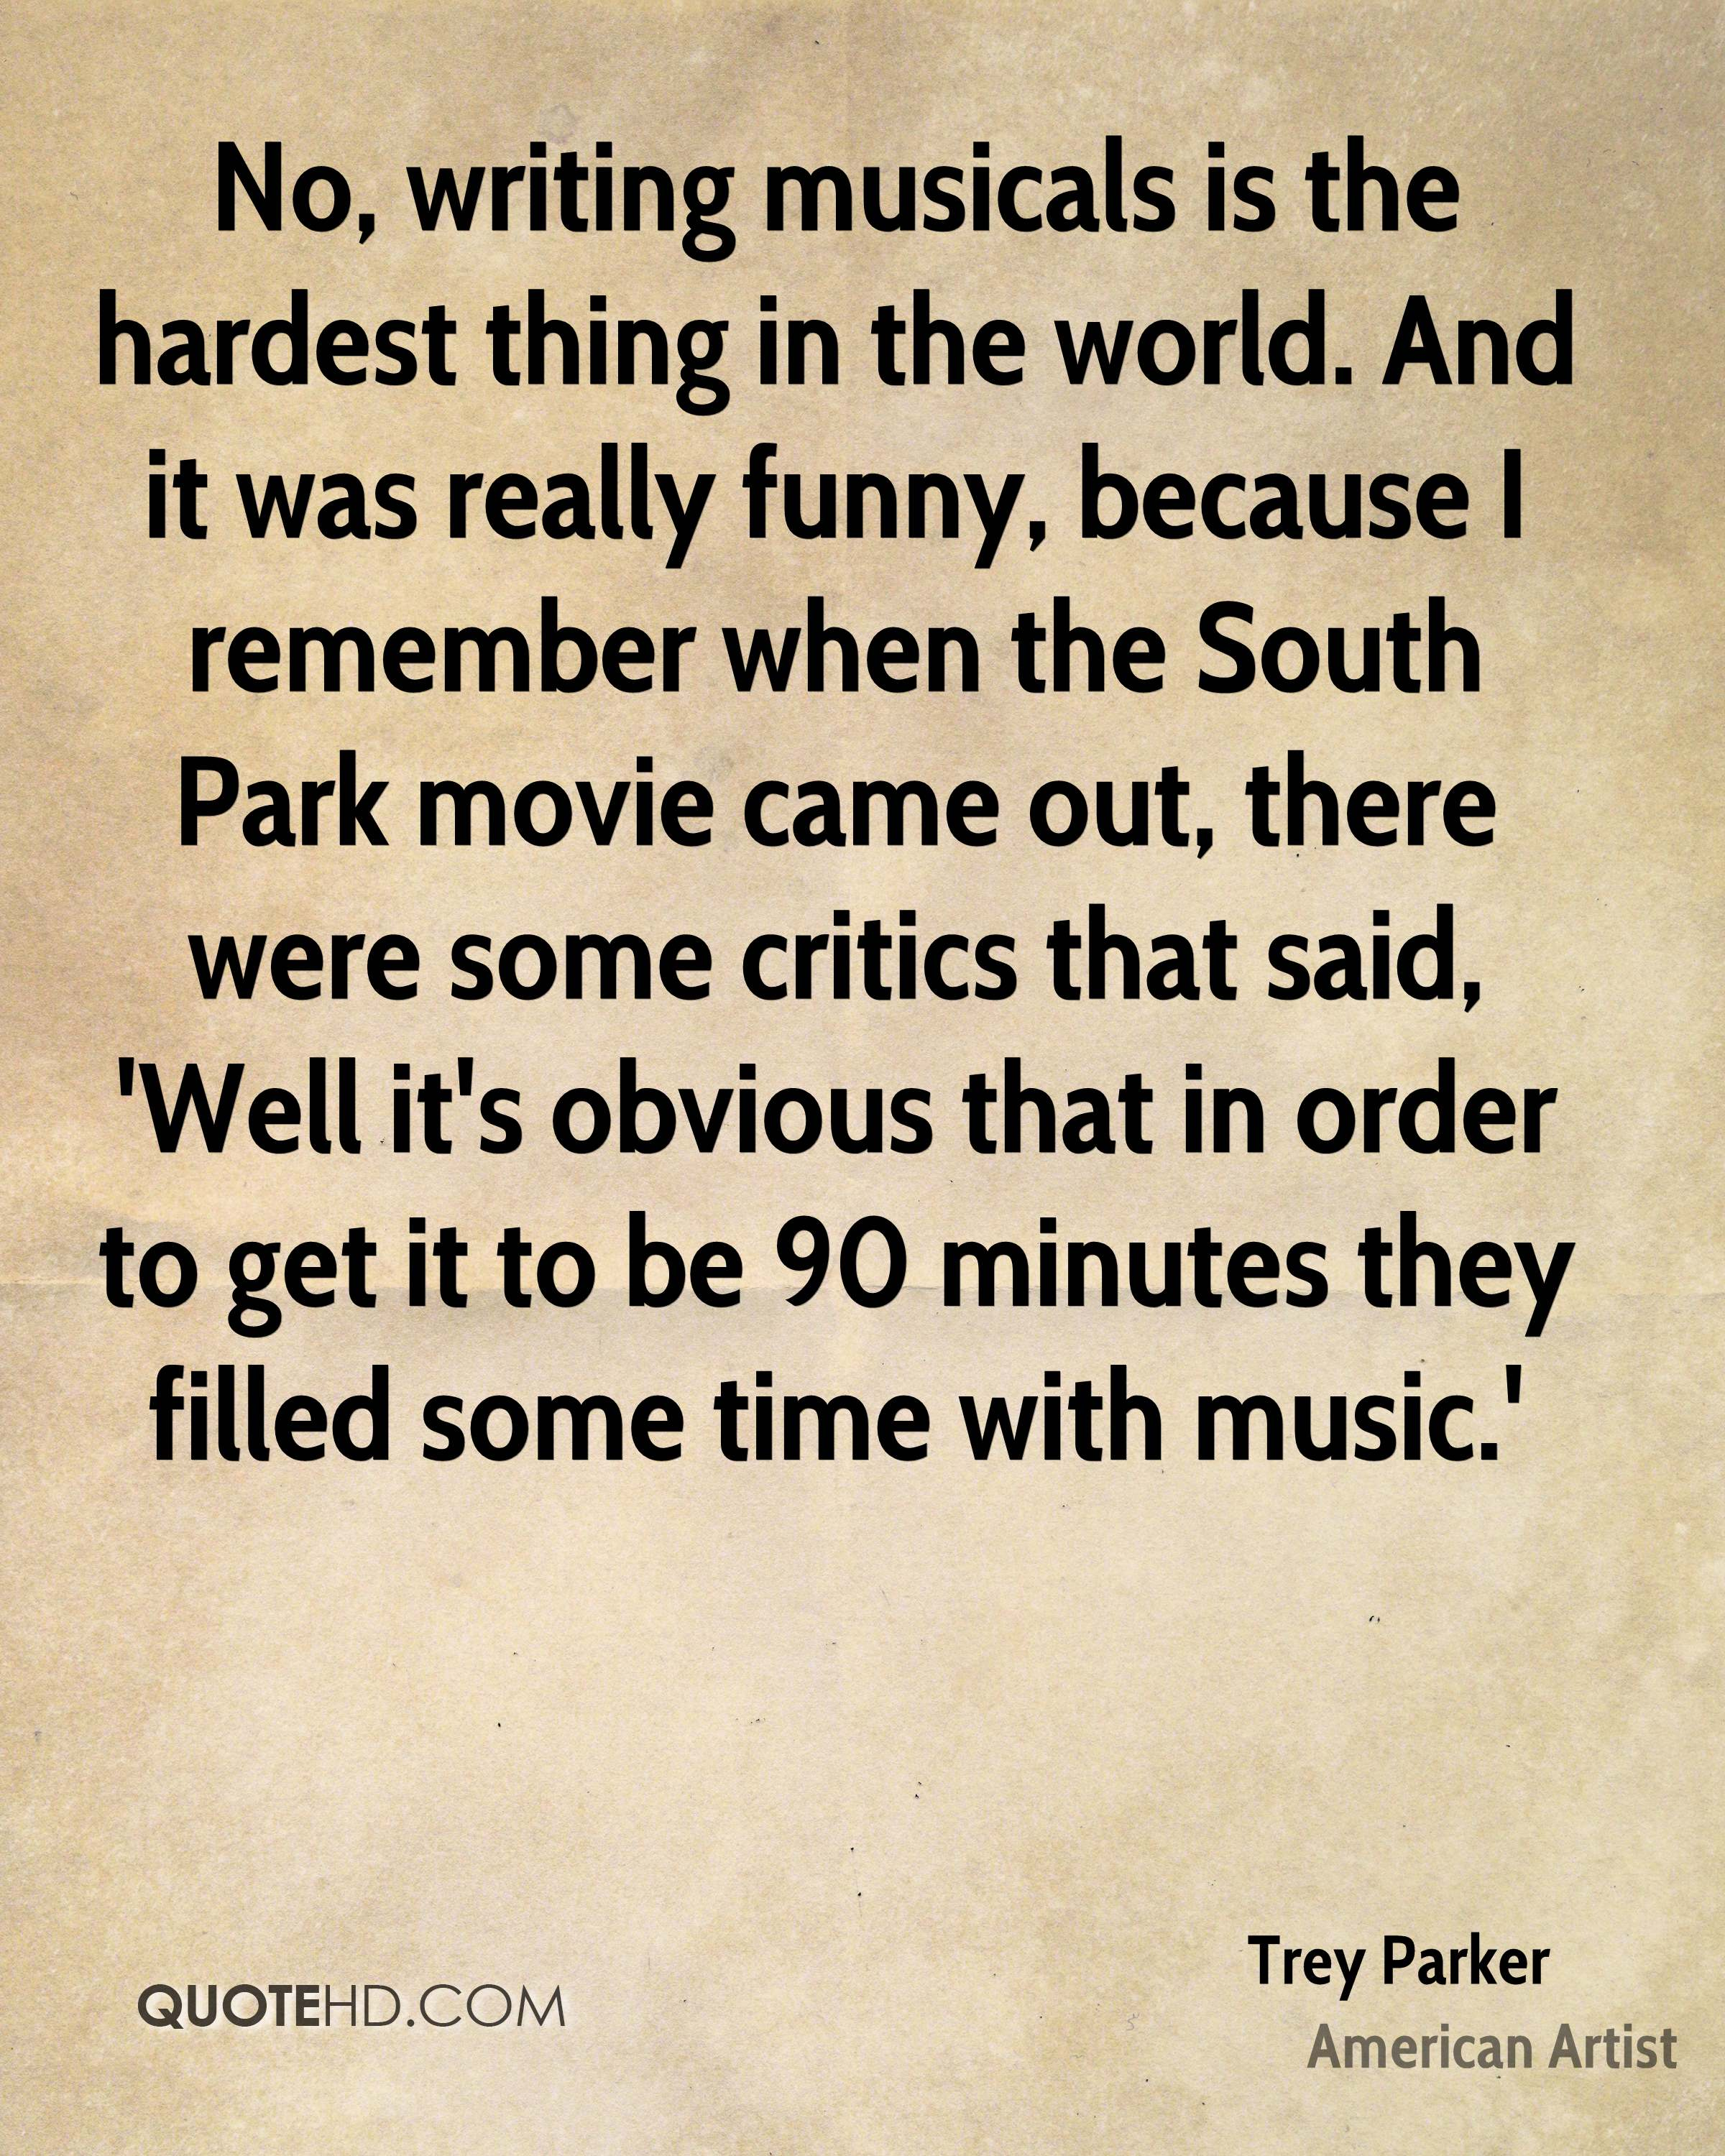 Deluxe It Was Really Trey Parker Music Quotes Quotehd Ny Music Quotes Writing Musicals Is Hardest Thing Sayings Ny Music Quotes inspiration Funny Music Quotes